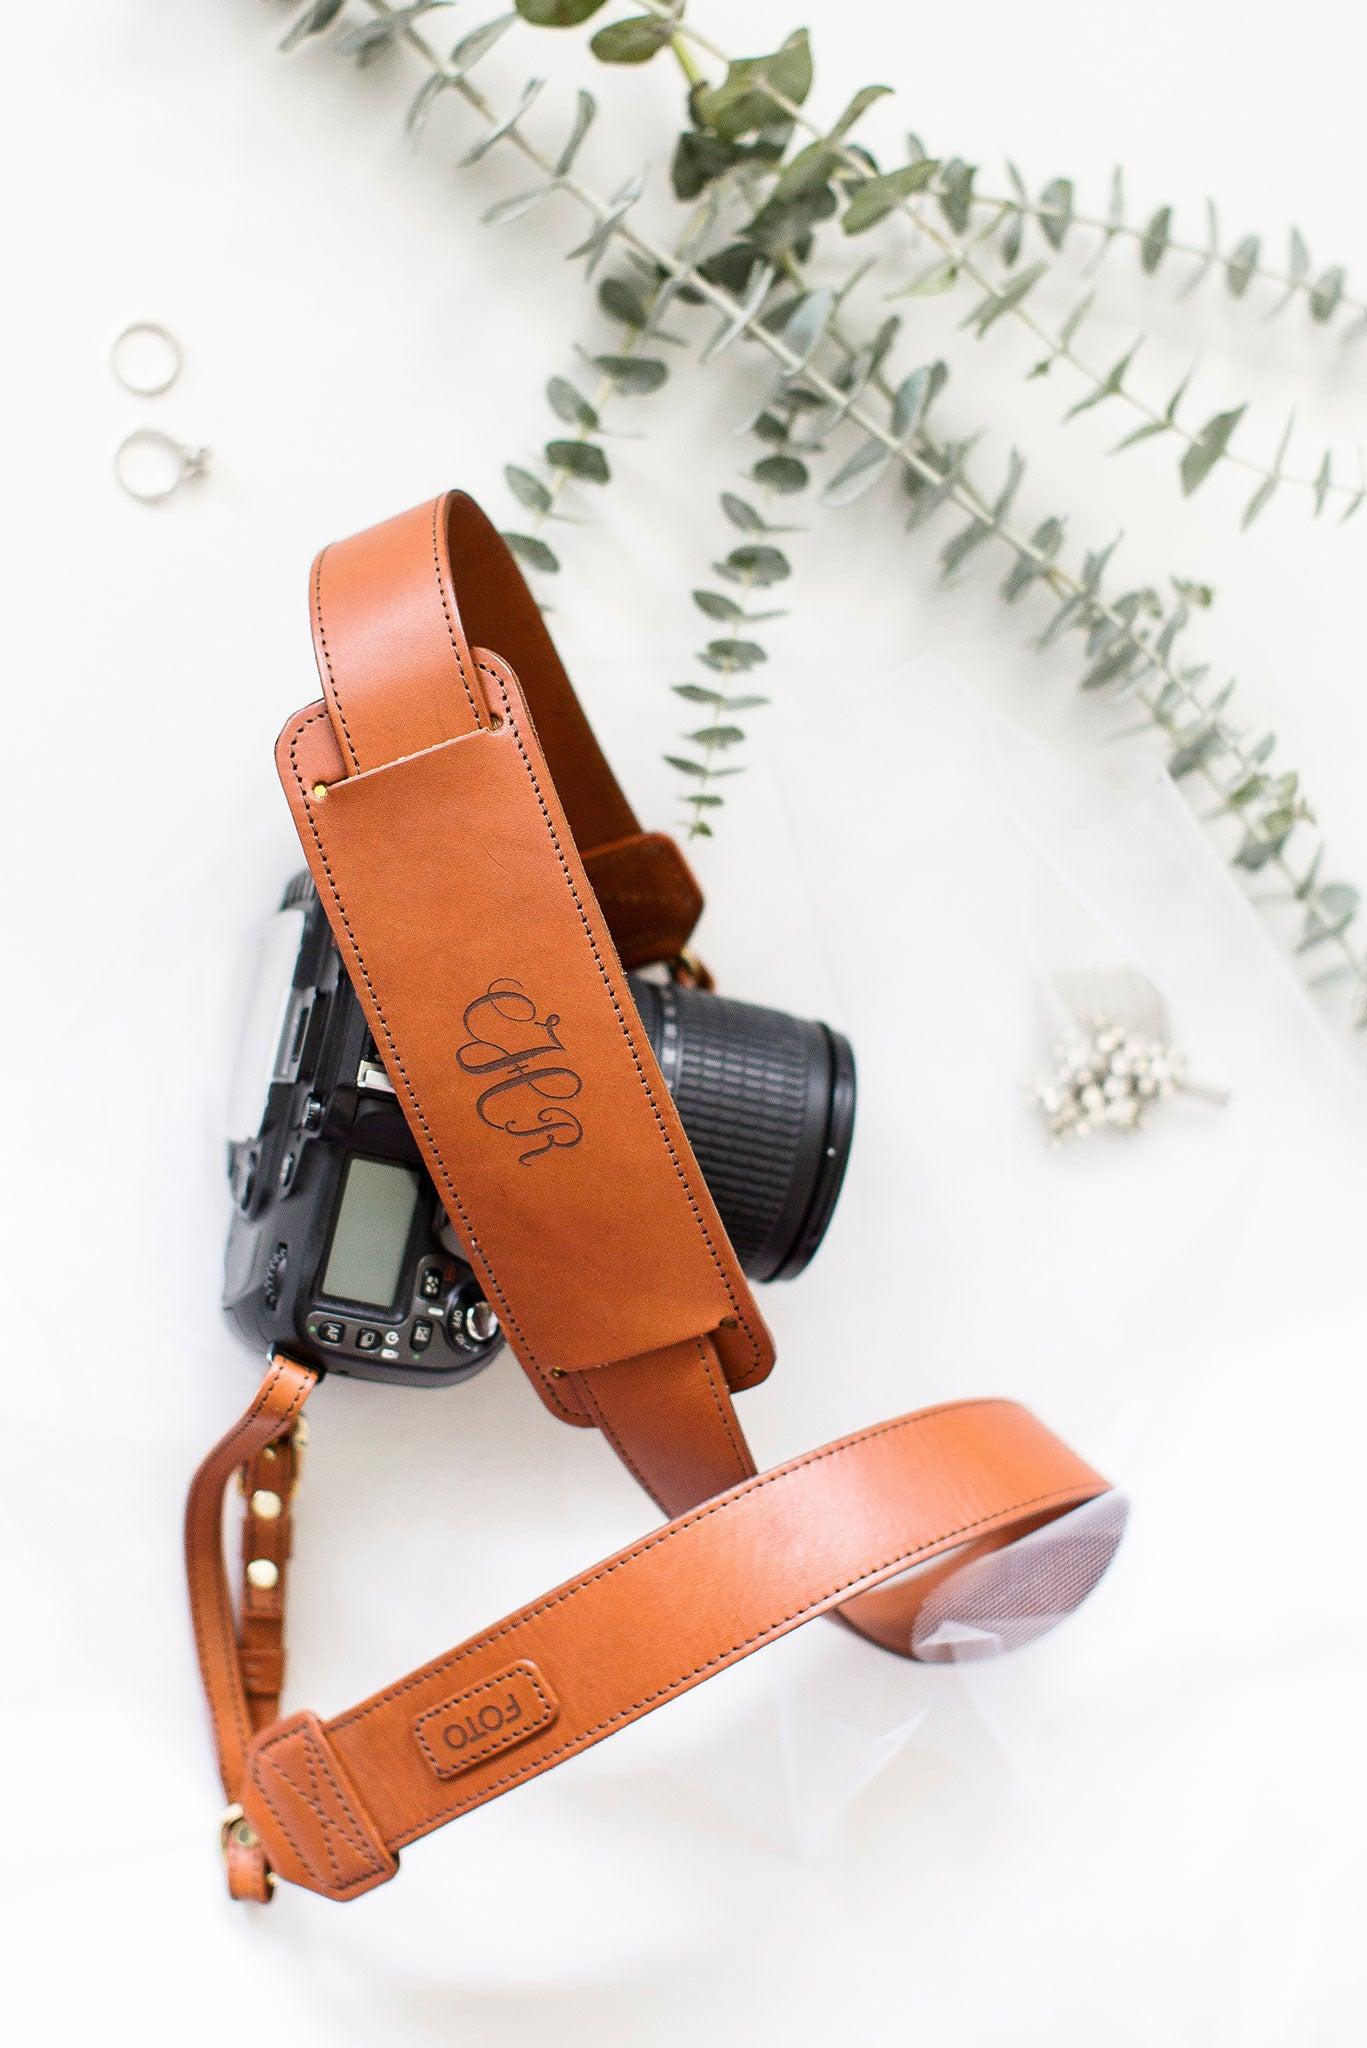 FOTO | The James Fotostrap for newlyweds - a cognac brown genuine all-leather camera strap that can be personalized with a monogram or personal graphic, making this leather camera strap the perfect personalized gift.